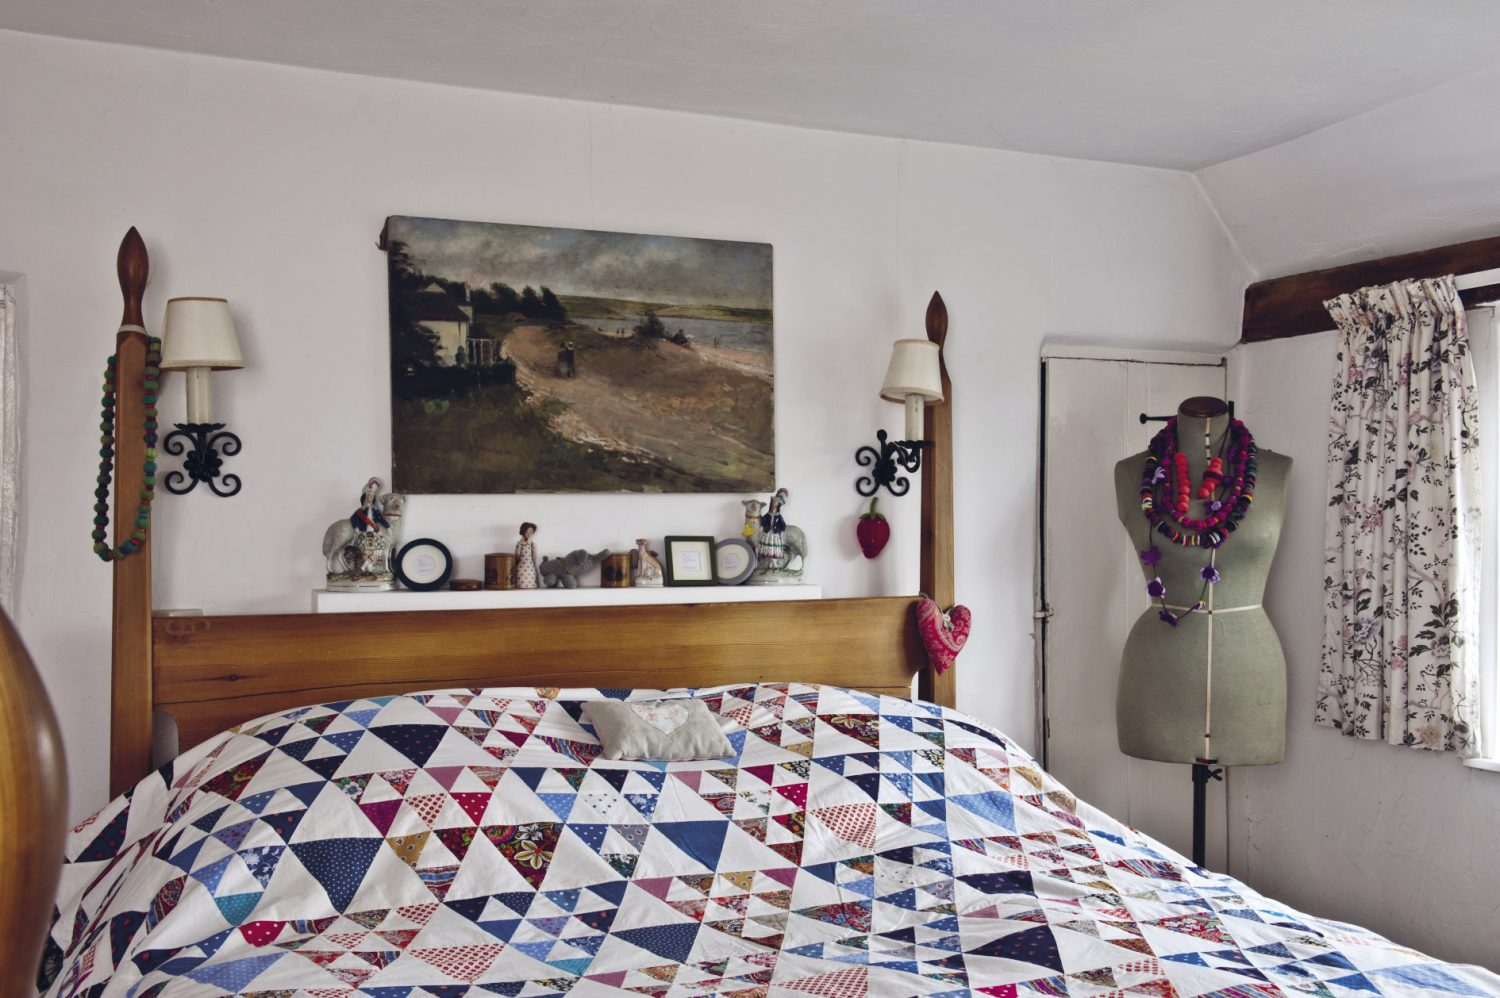 The main bedroom features a wooden Shaker-style bed that was handmade by a local craftsman and covered with a patchwork quilt with a border of heart, animal and house motifs that Nancy made